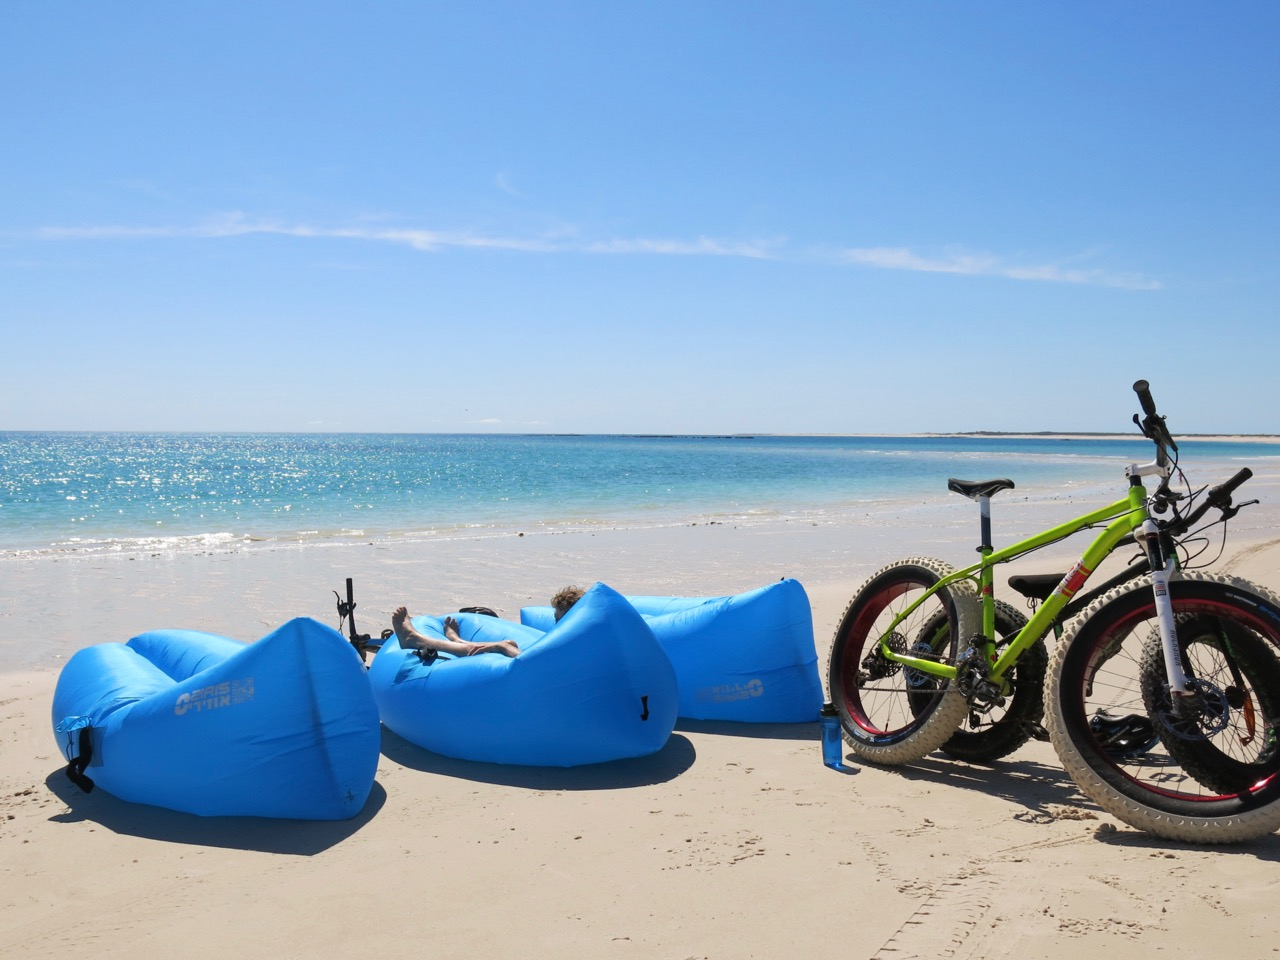 Lounges and fat bikes at beach